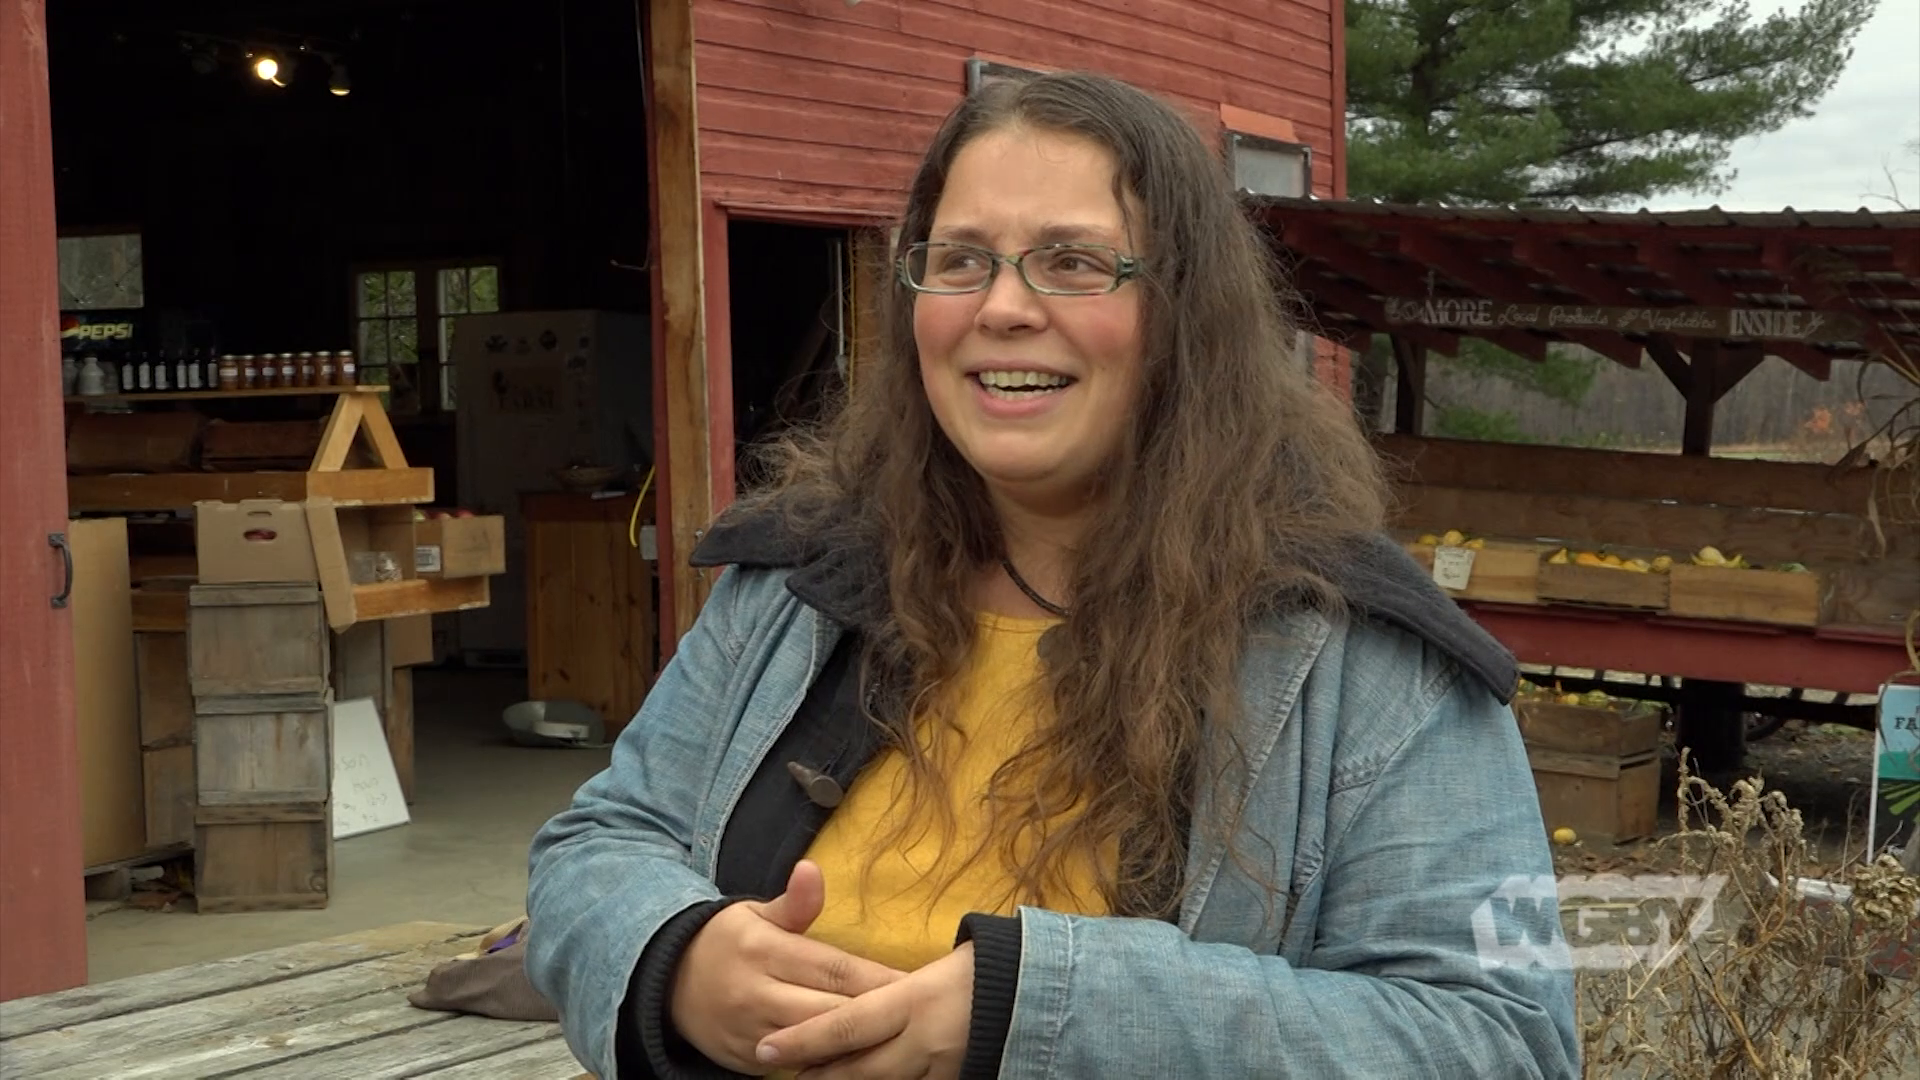 Disabled single mother Rebecca Martin shares her struggles with food insecurity as part of Field Notes, CISA's storytelling project about local agriculture.